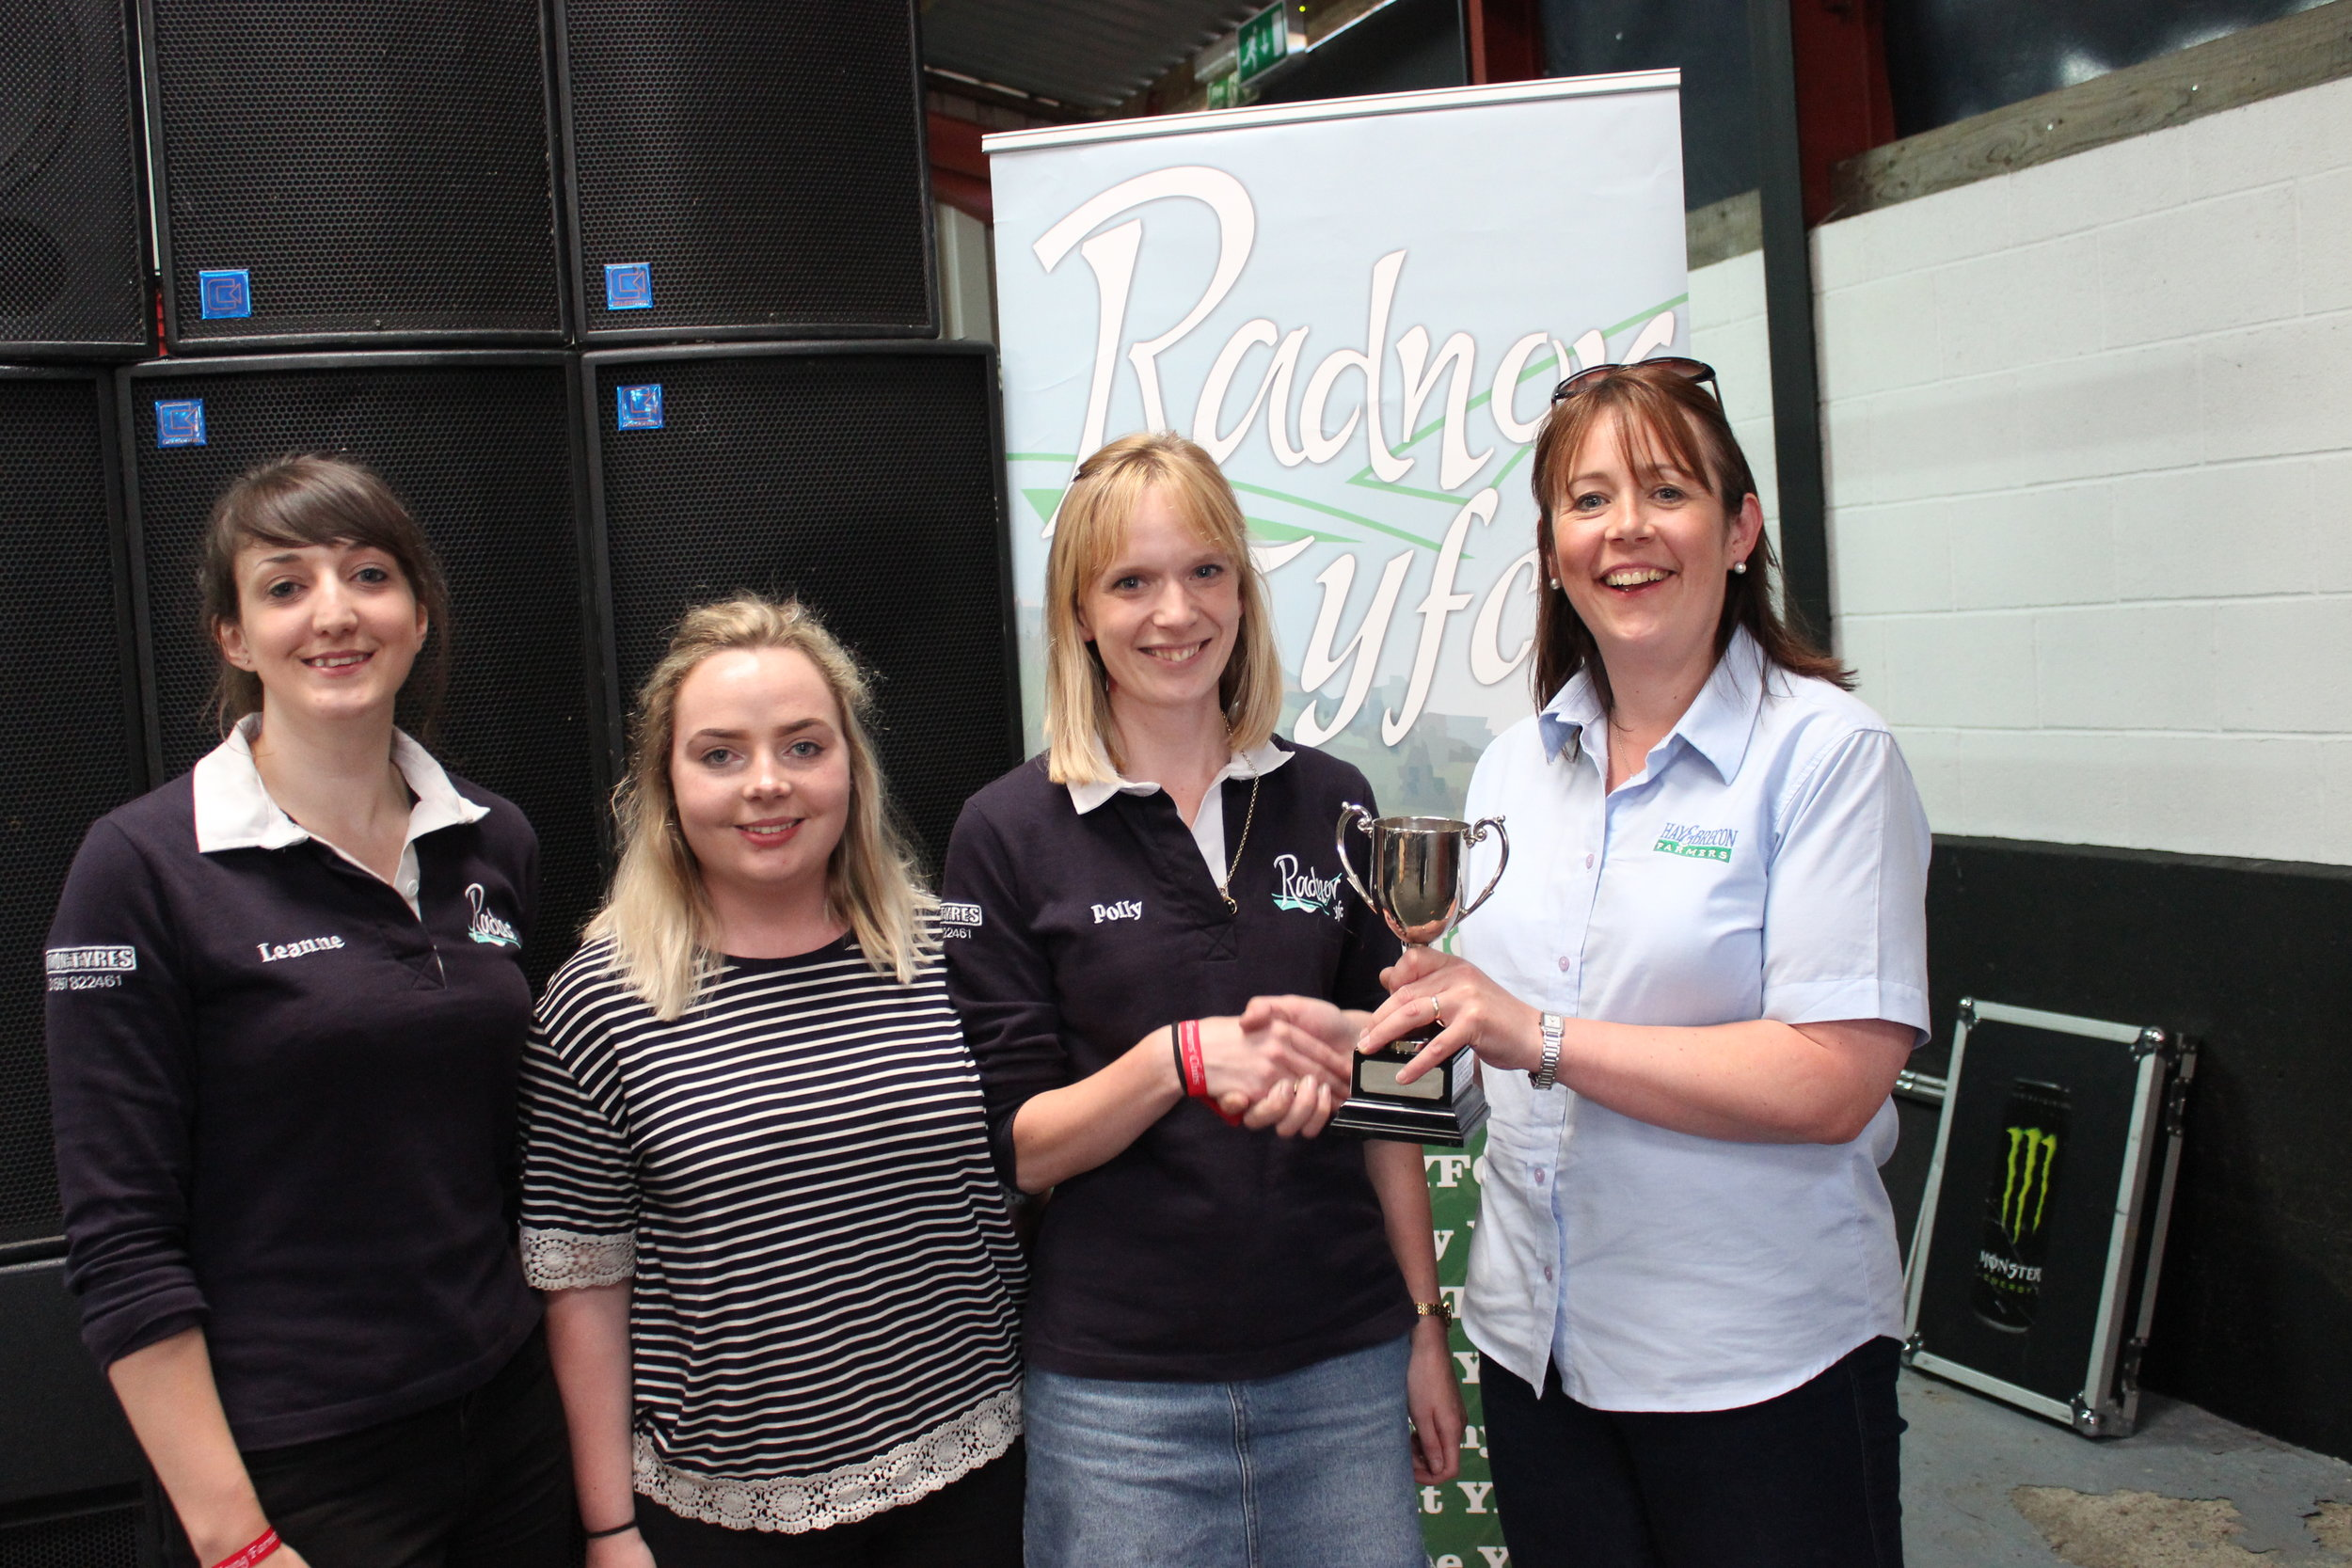 Leanne Jones, Holly Richards & Polly Kendrick, Penybont YFC - Red Flame Productions Cup / Top of the Pops Group Competition